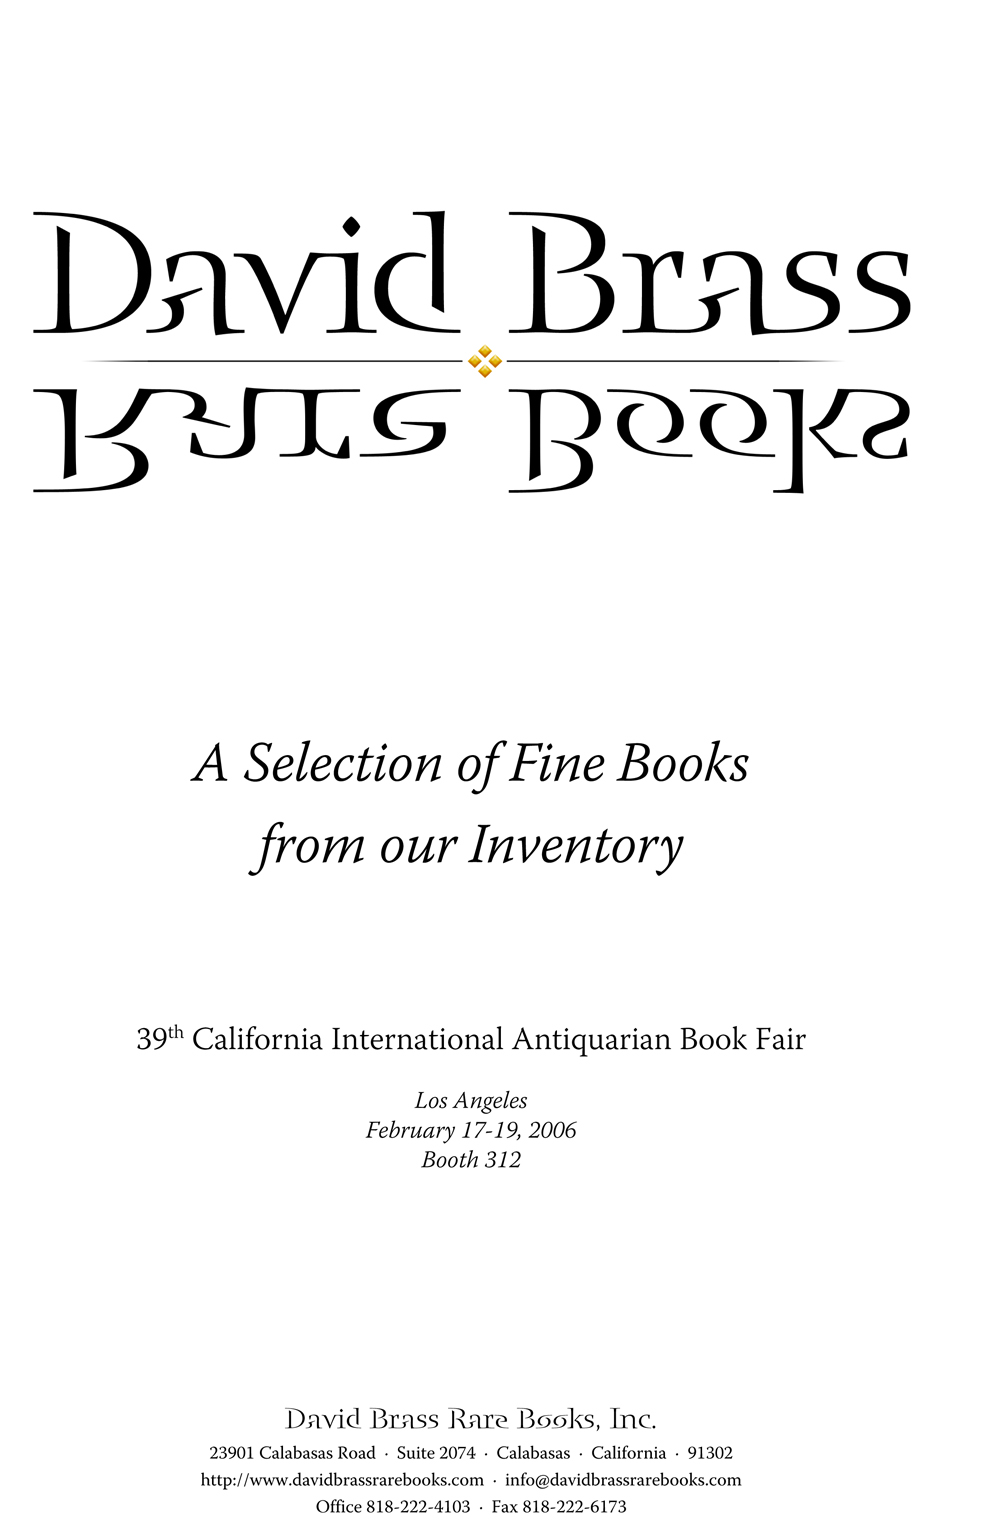 2006 The 39th California International Antiquarian Book Fair